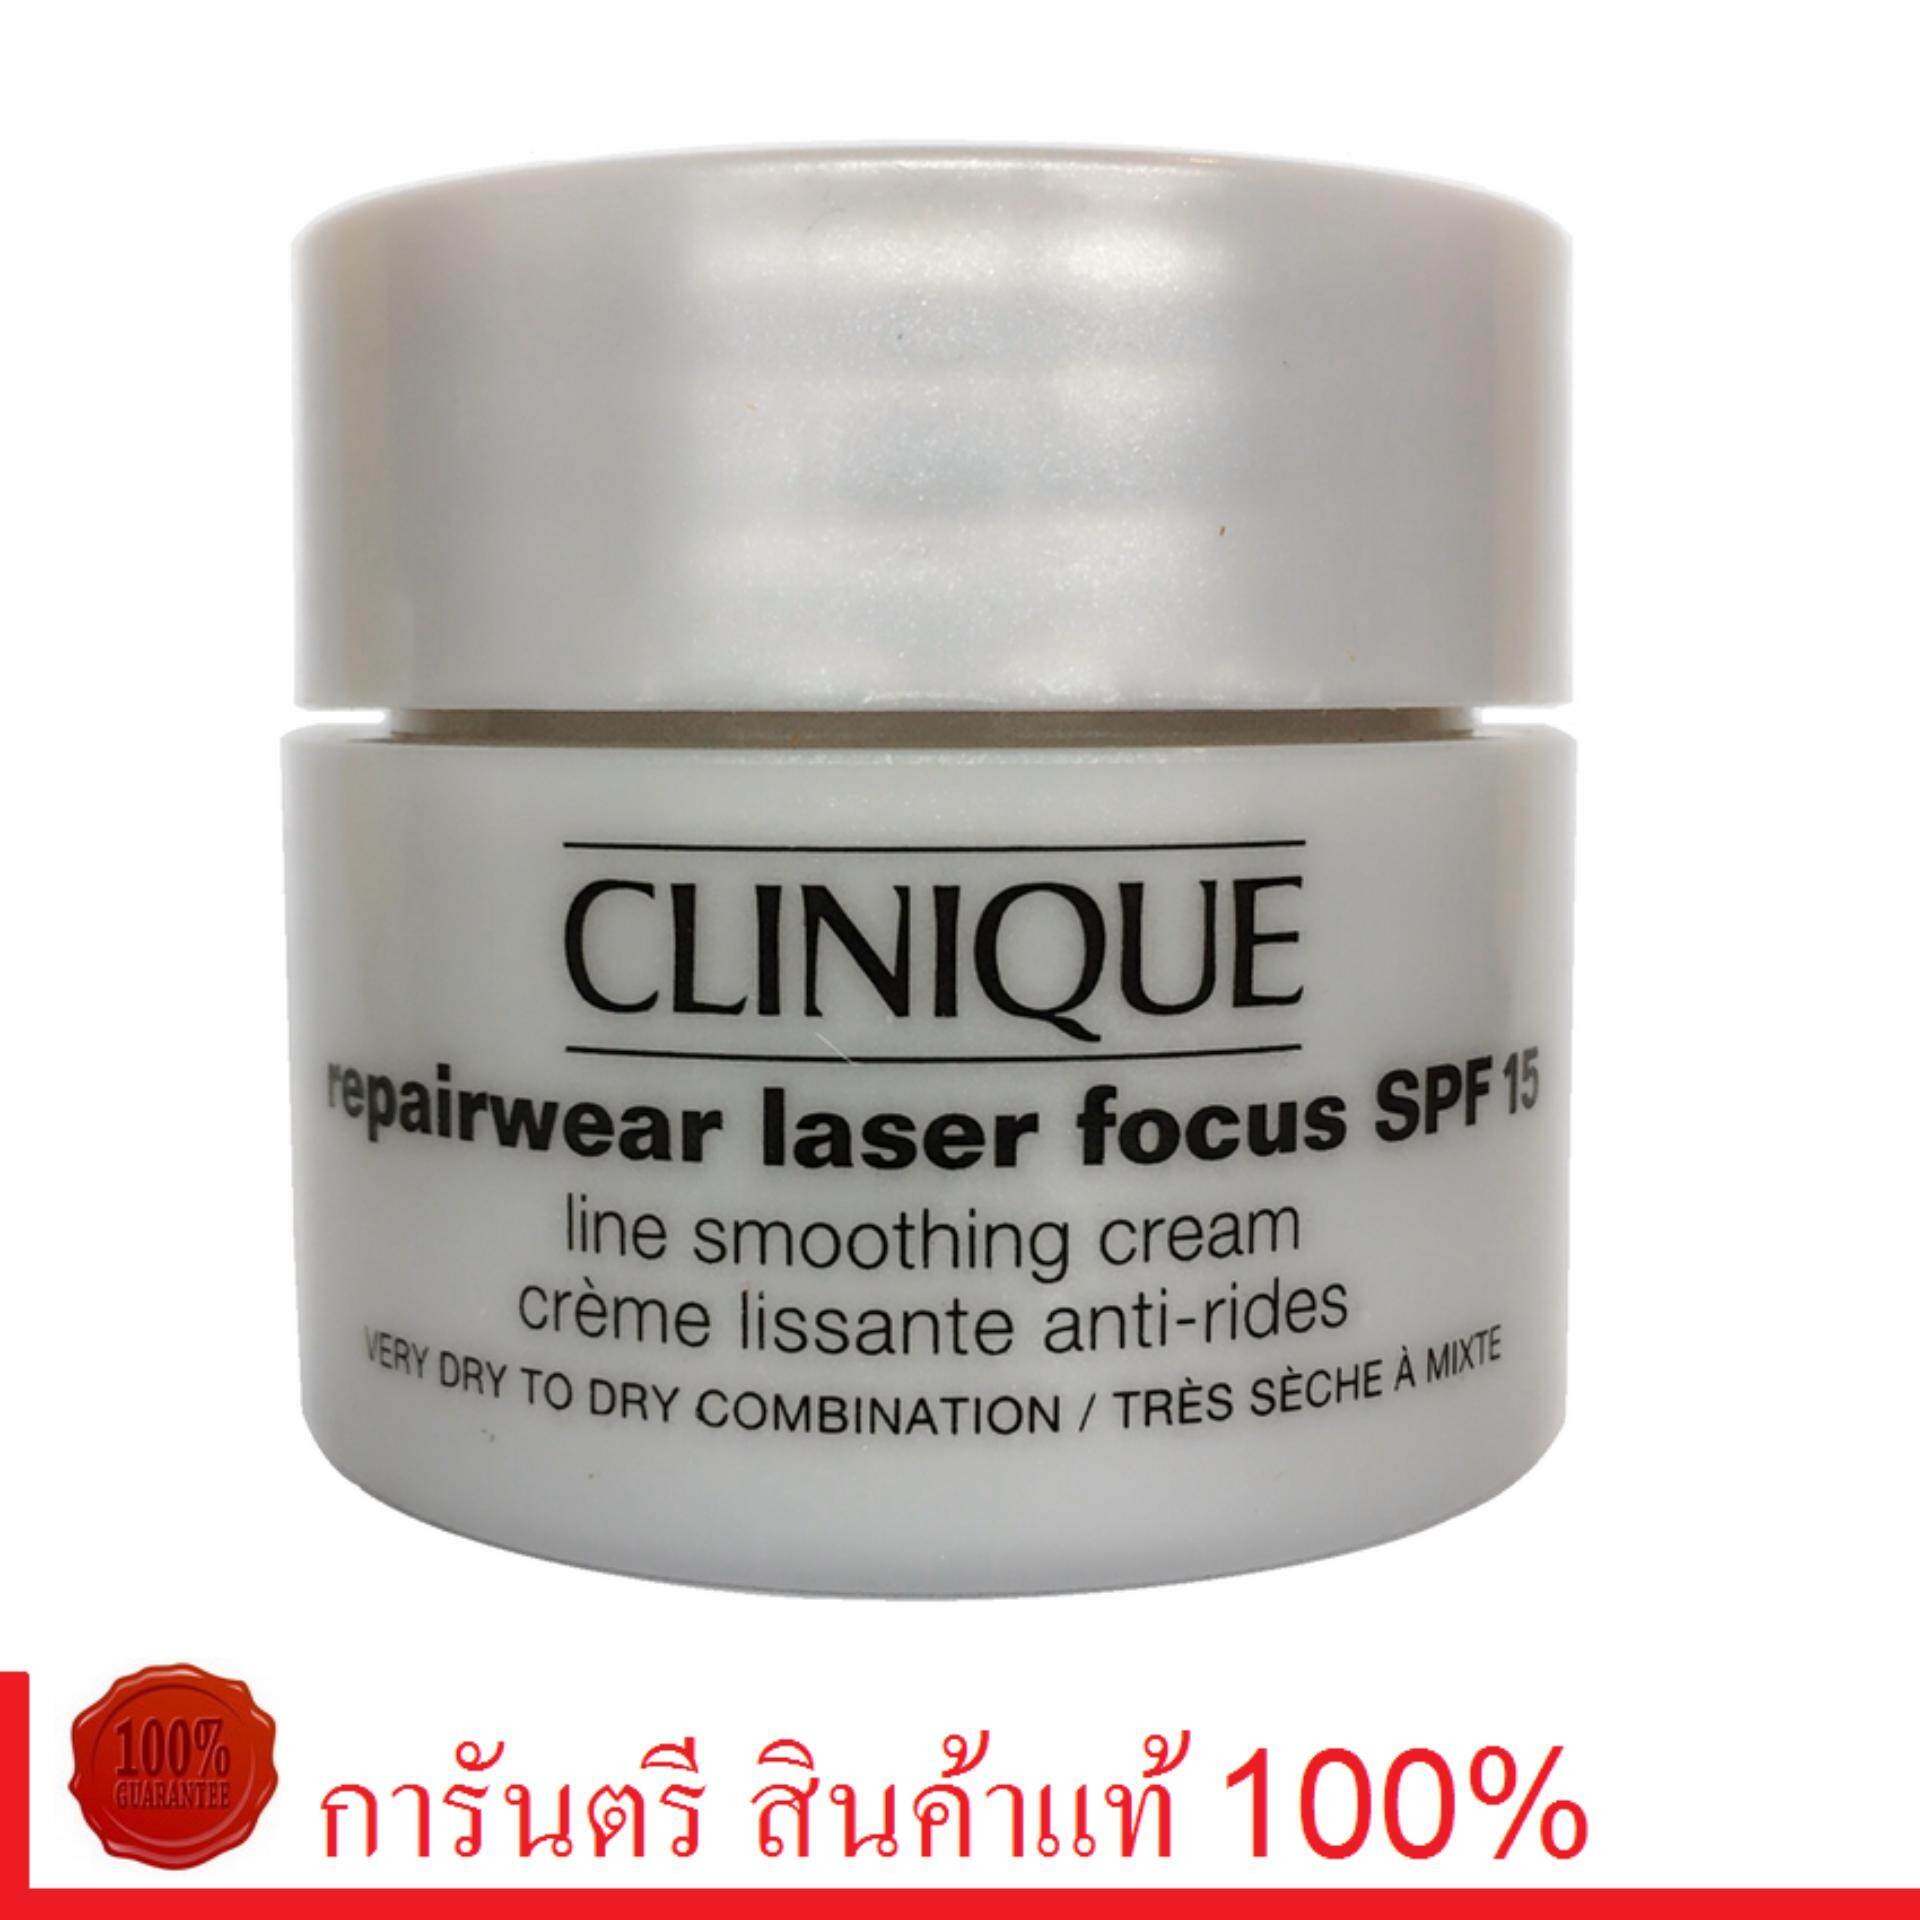 ซื้อ Clinique Repairwear Laser Focus Spf15 Day Cream 15Ml ใน นนทบุรี